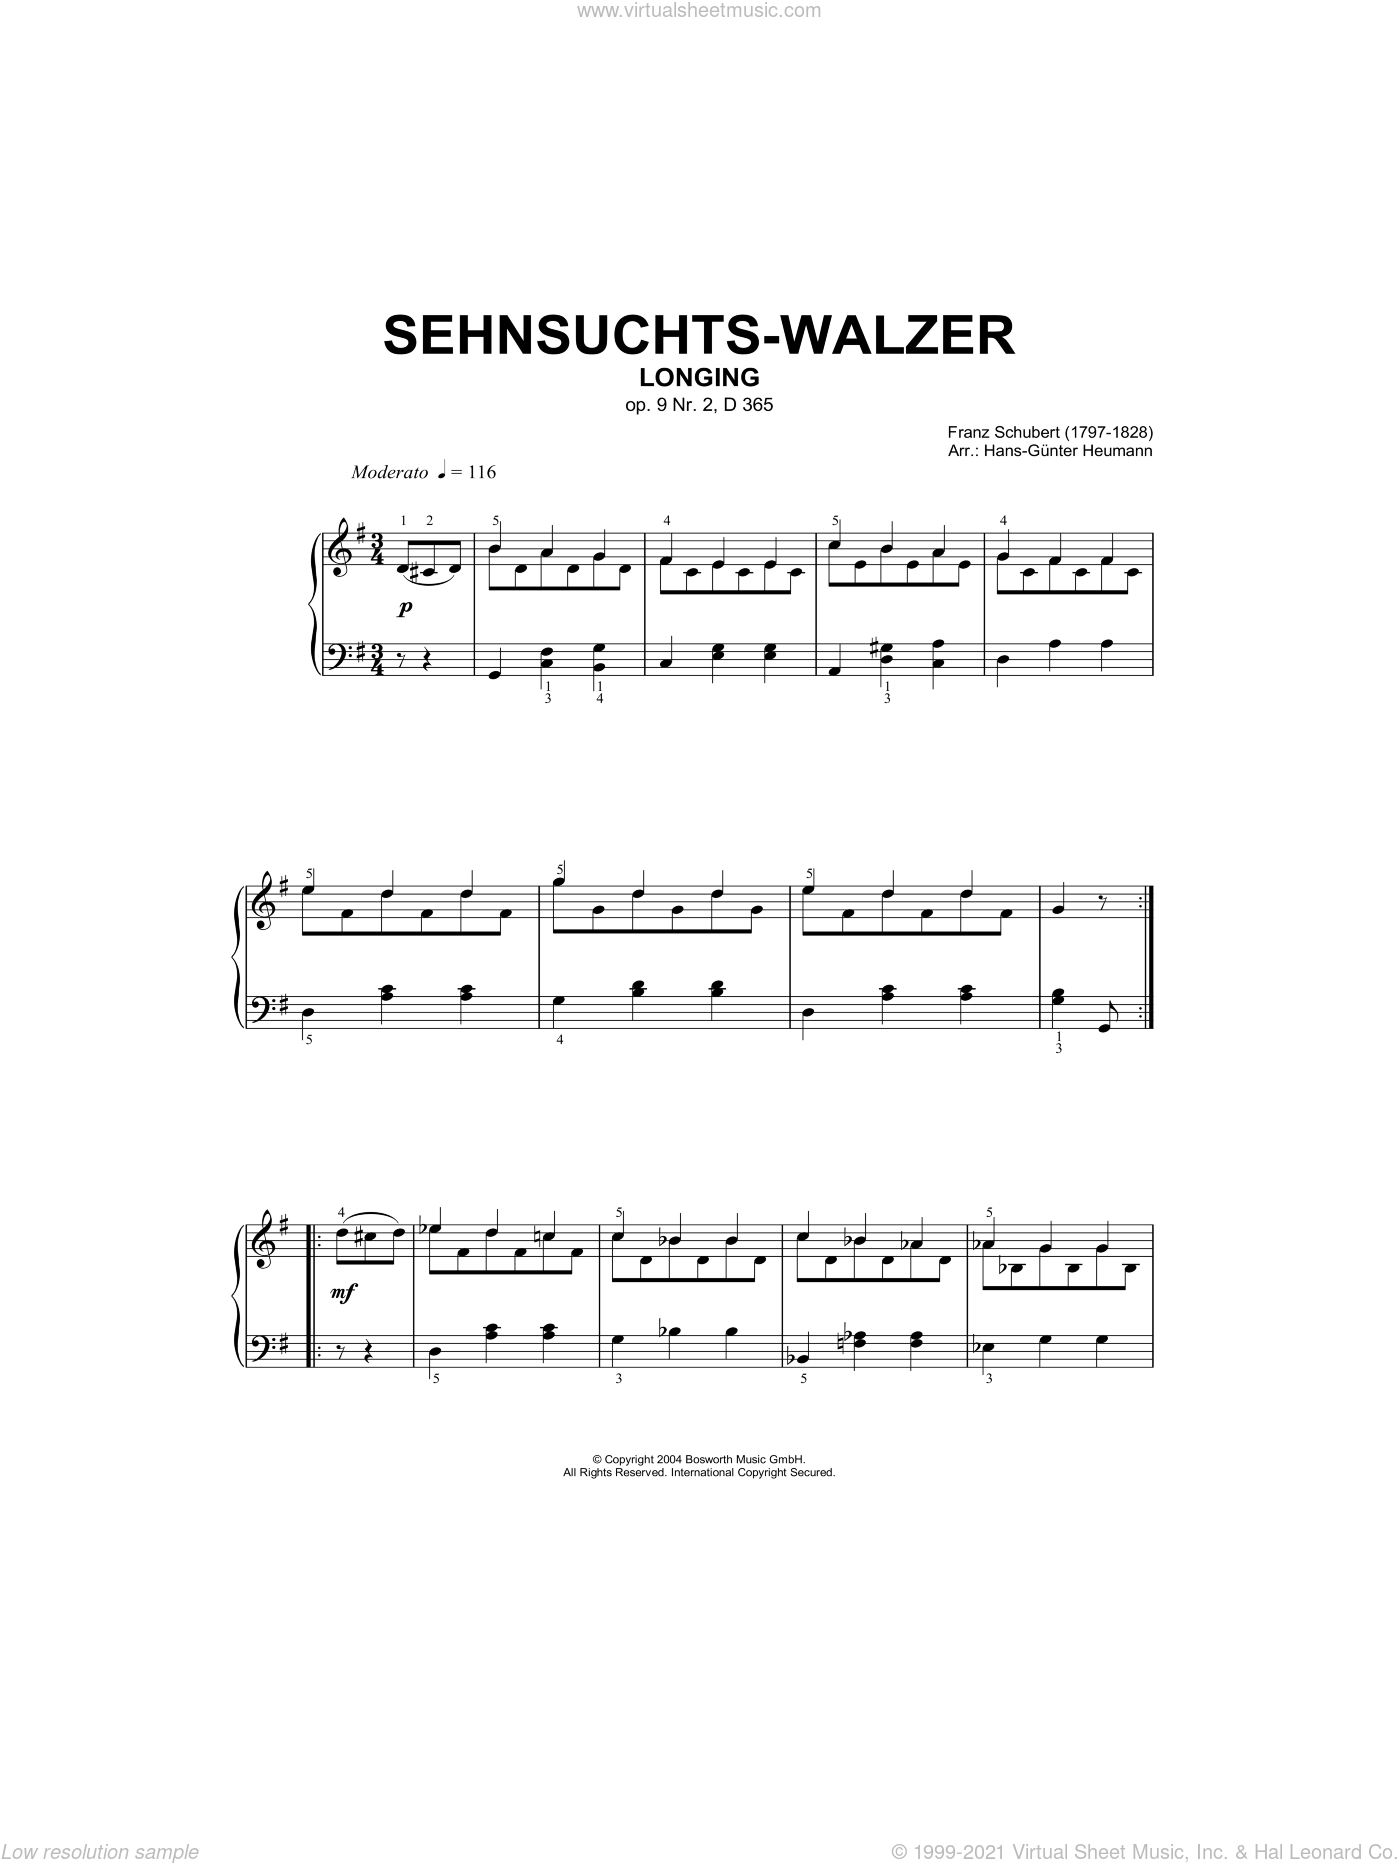 Sehnsuchts-Walzer (Longing), Op.9, No.2, D365 sheet music for piano solo by Franz Schubert